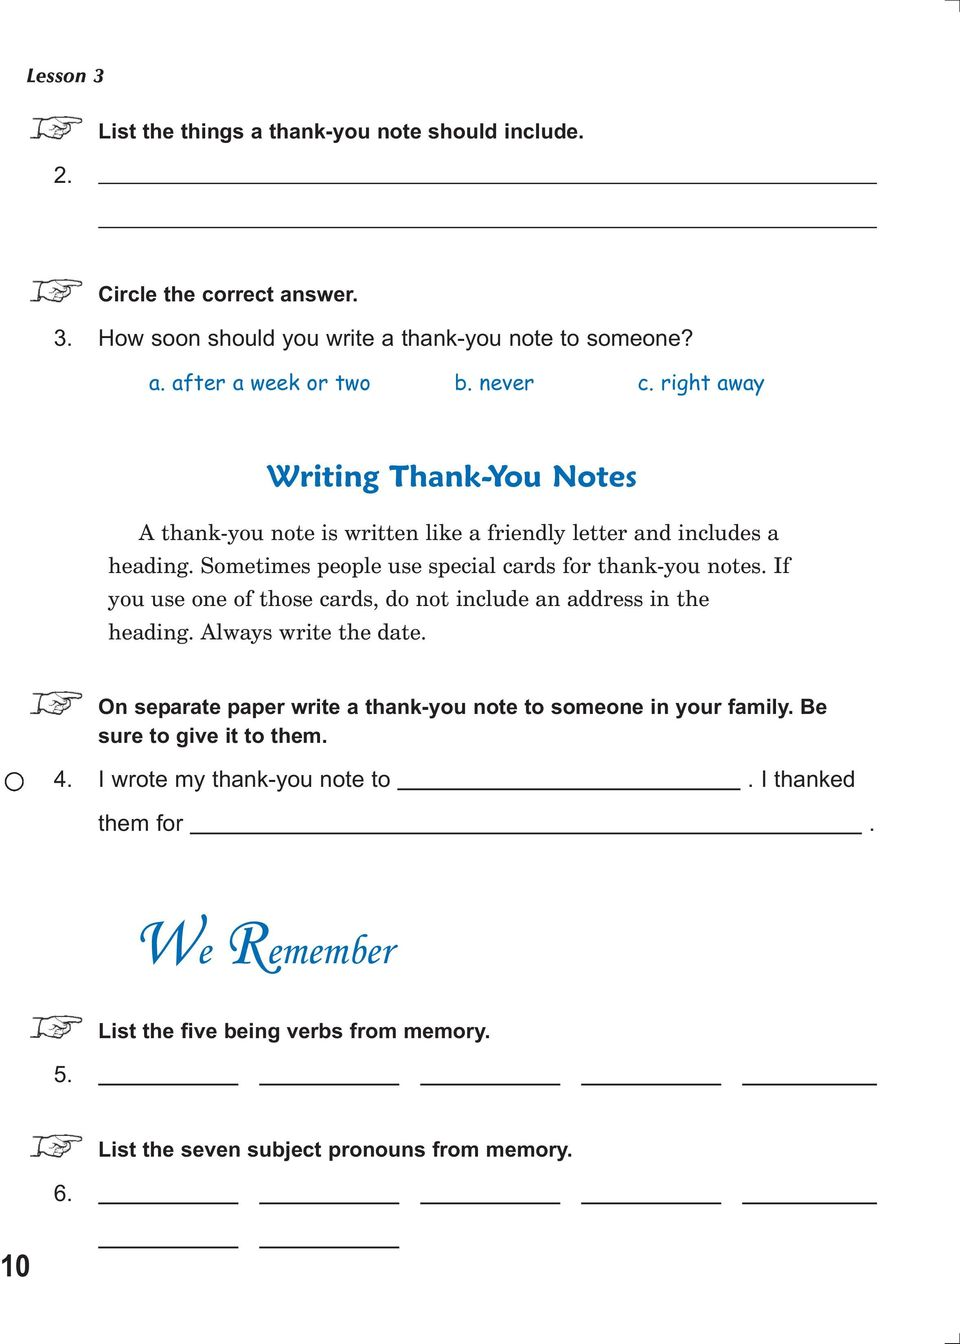 If you use one of those cards, do not include an address in the heading. Always write the date. On separate paper write a thank-you note to someone in your family.